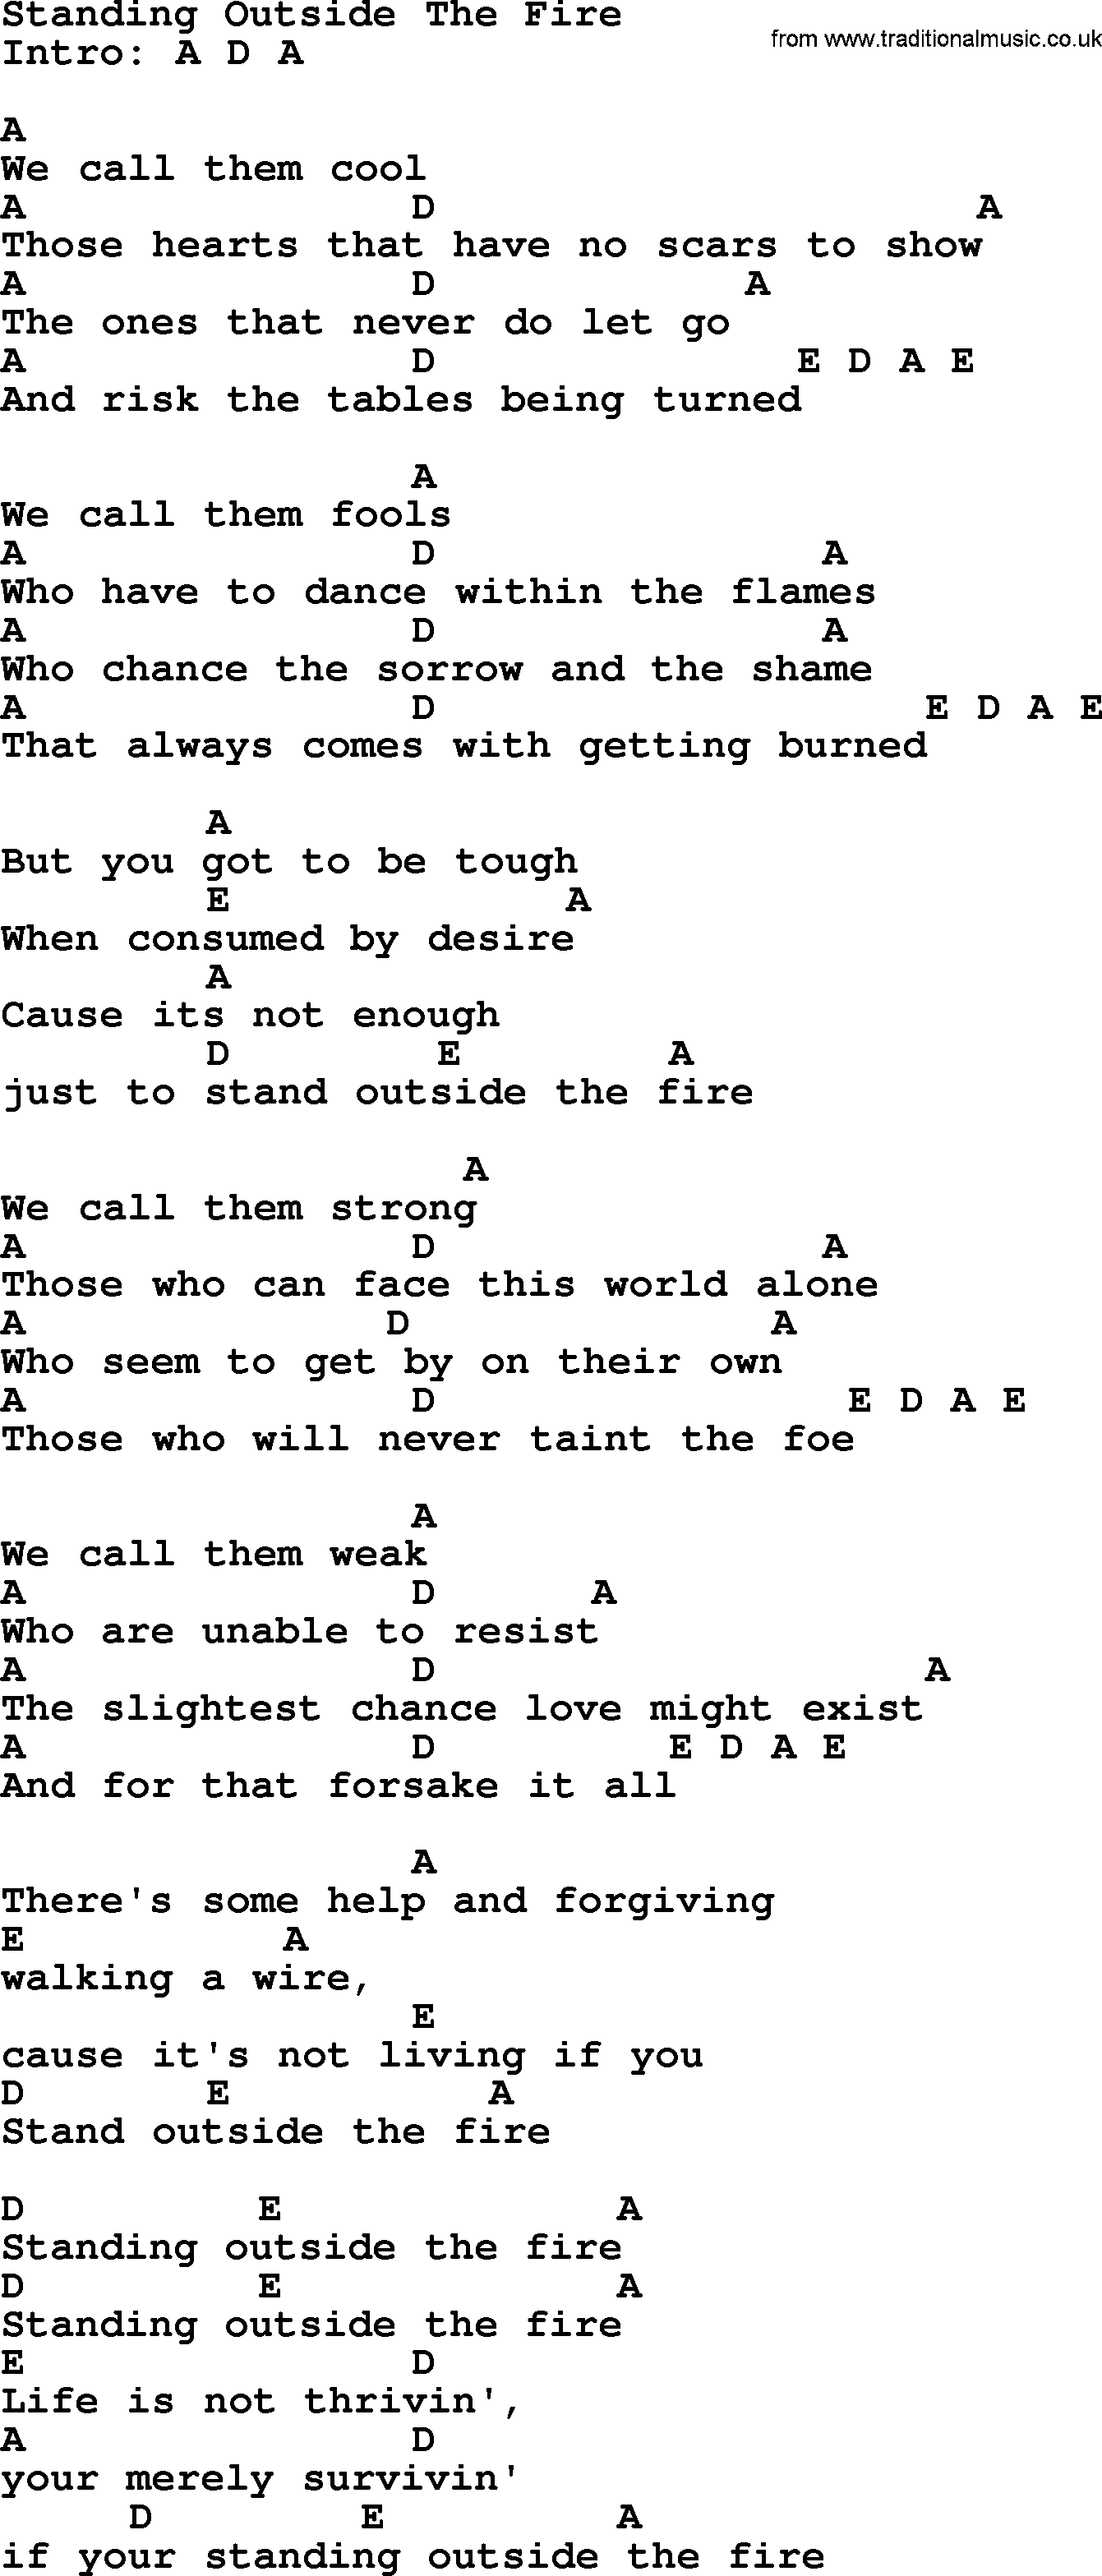 Standing outside the fire by garth brooks lyrics and chords garth brooks song standing outside the fire lyrics and chords hexwebz Gallery